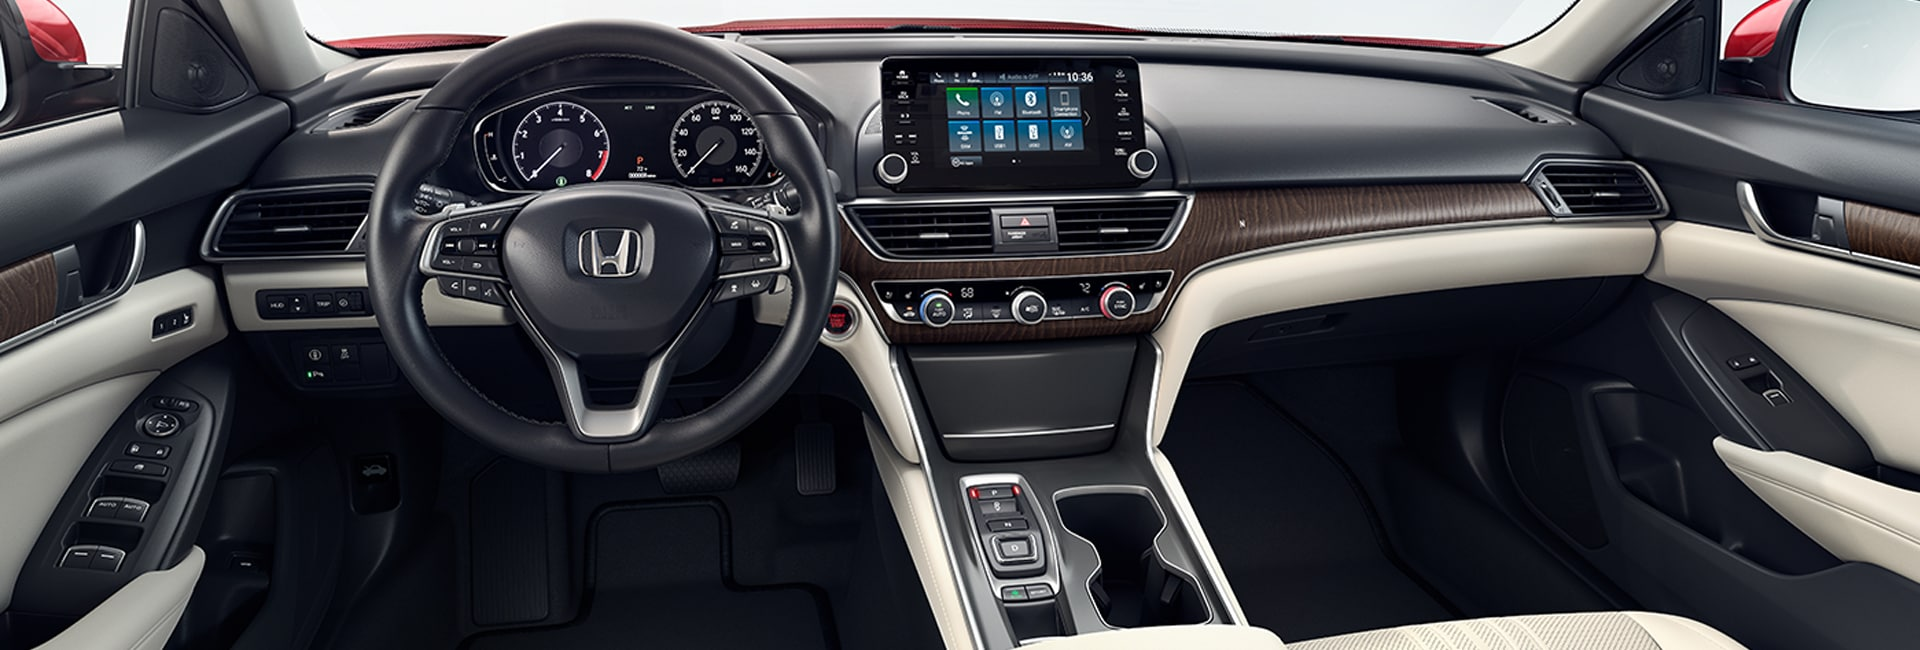 Honda Accord Interior and Exterior Vehicle Features